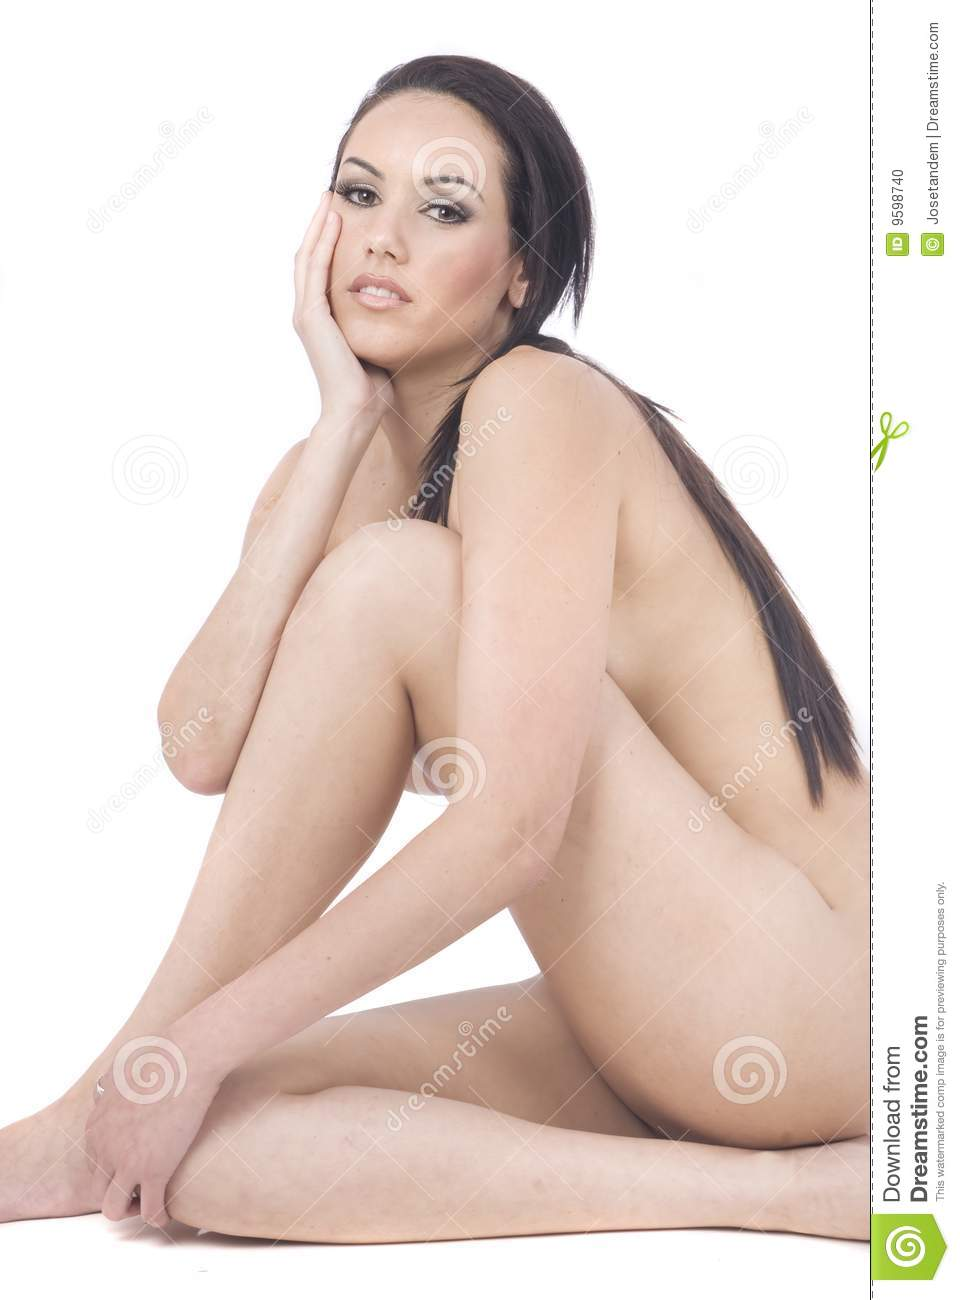 Healthy Nude Woman Over White Stock Photo - Image 9598740-1371